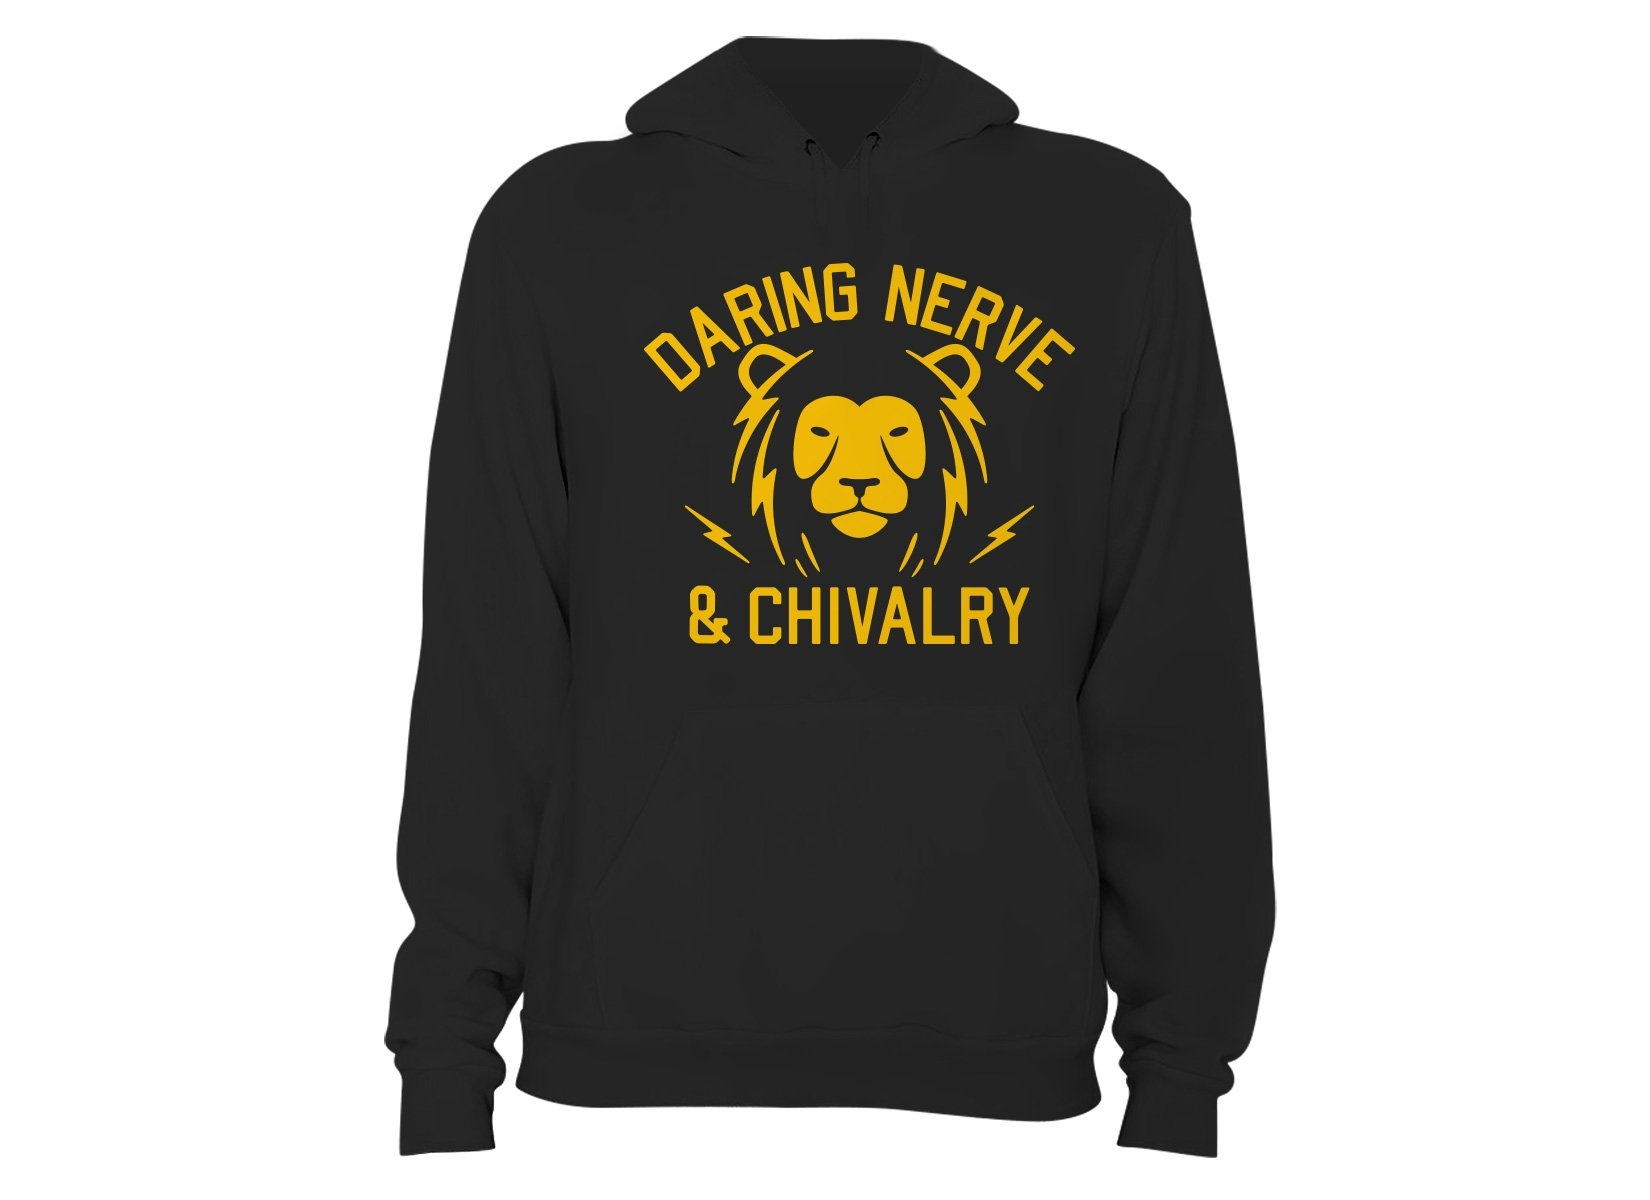 Daring, Nerve, And Chivalry on Hoodie